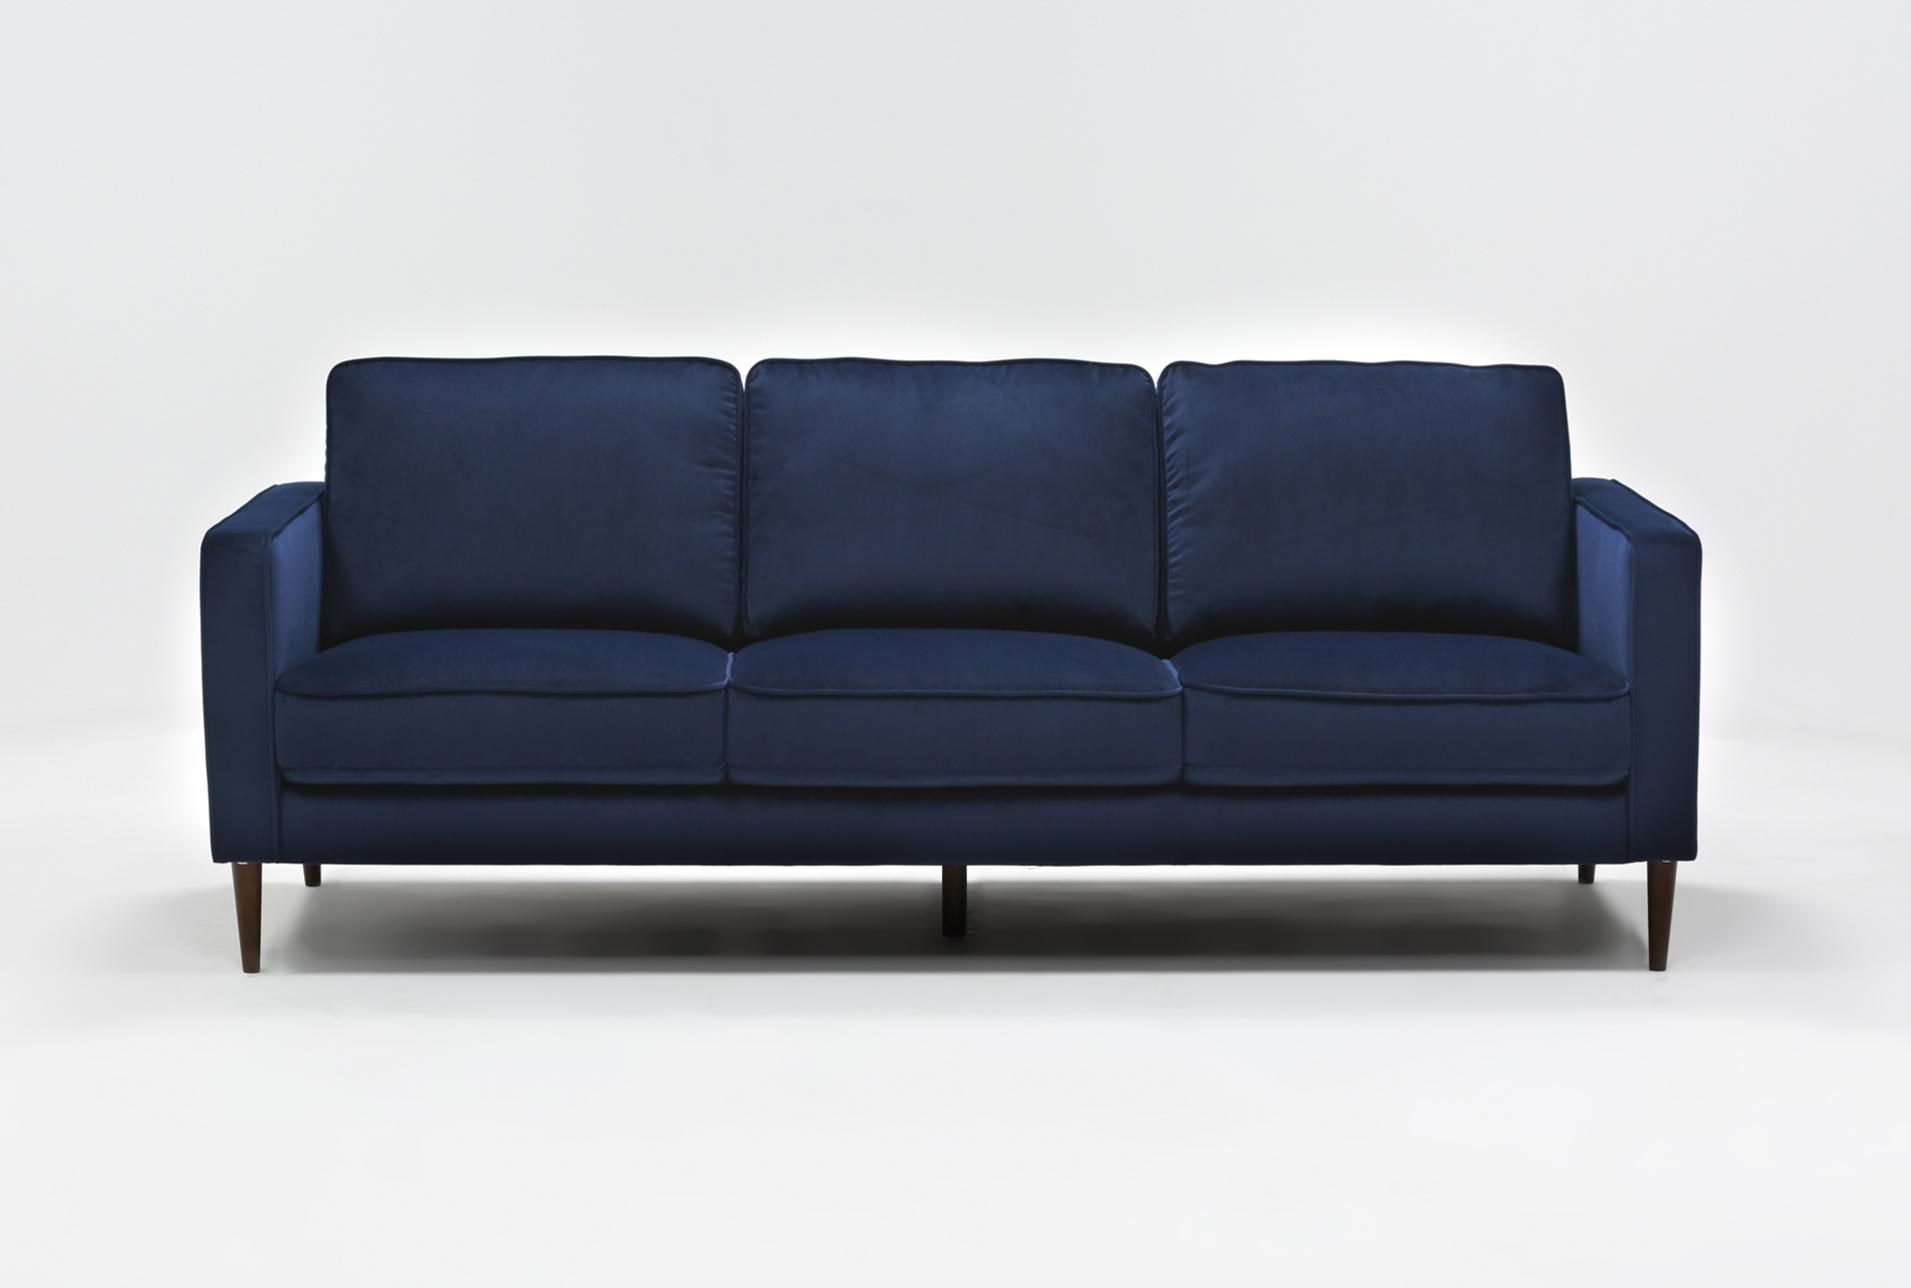 Awesome Fairfax Denim Velvet Sofa Gmtry Best Dining Table And Chair Ideas Images Gmtryco